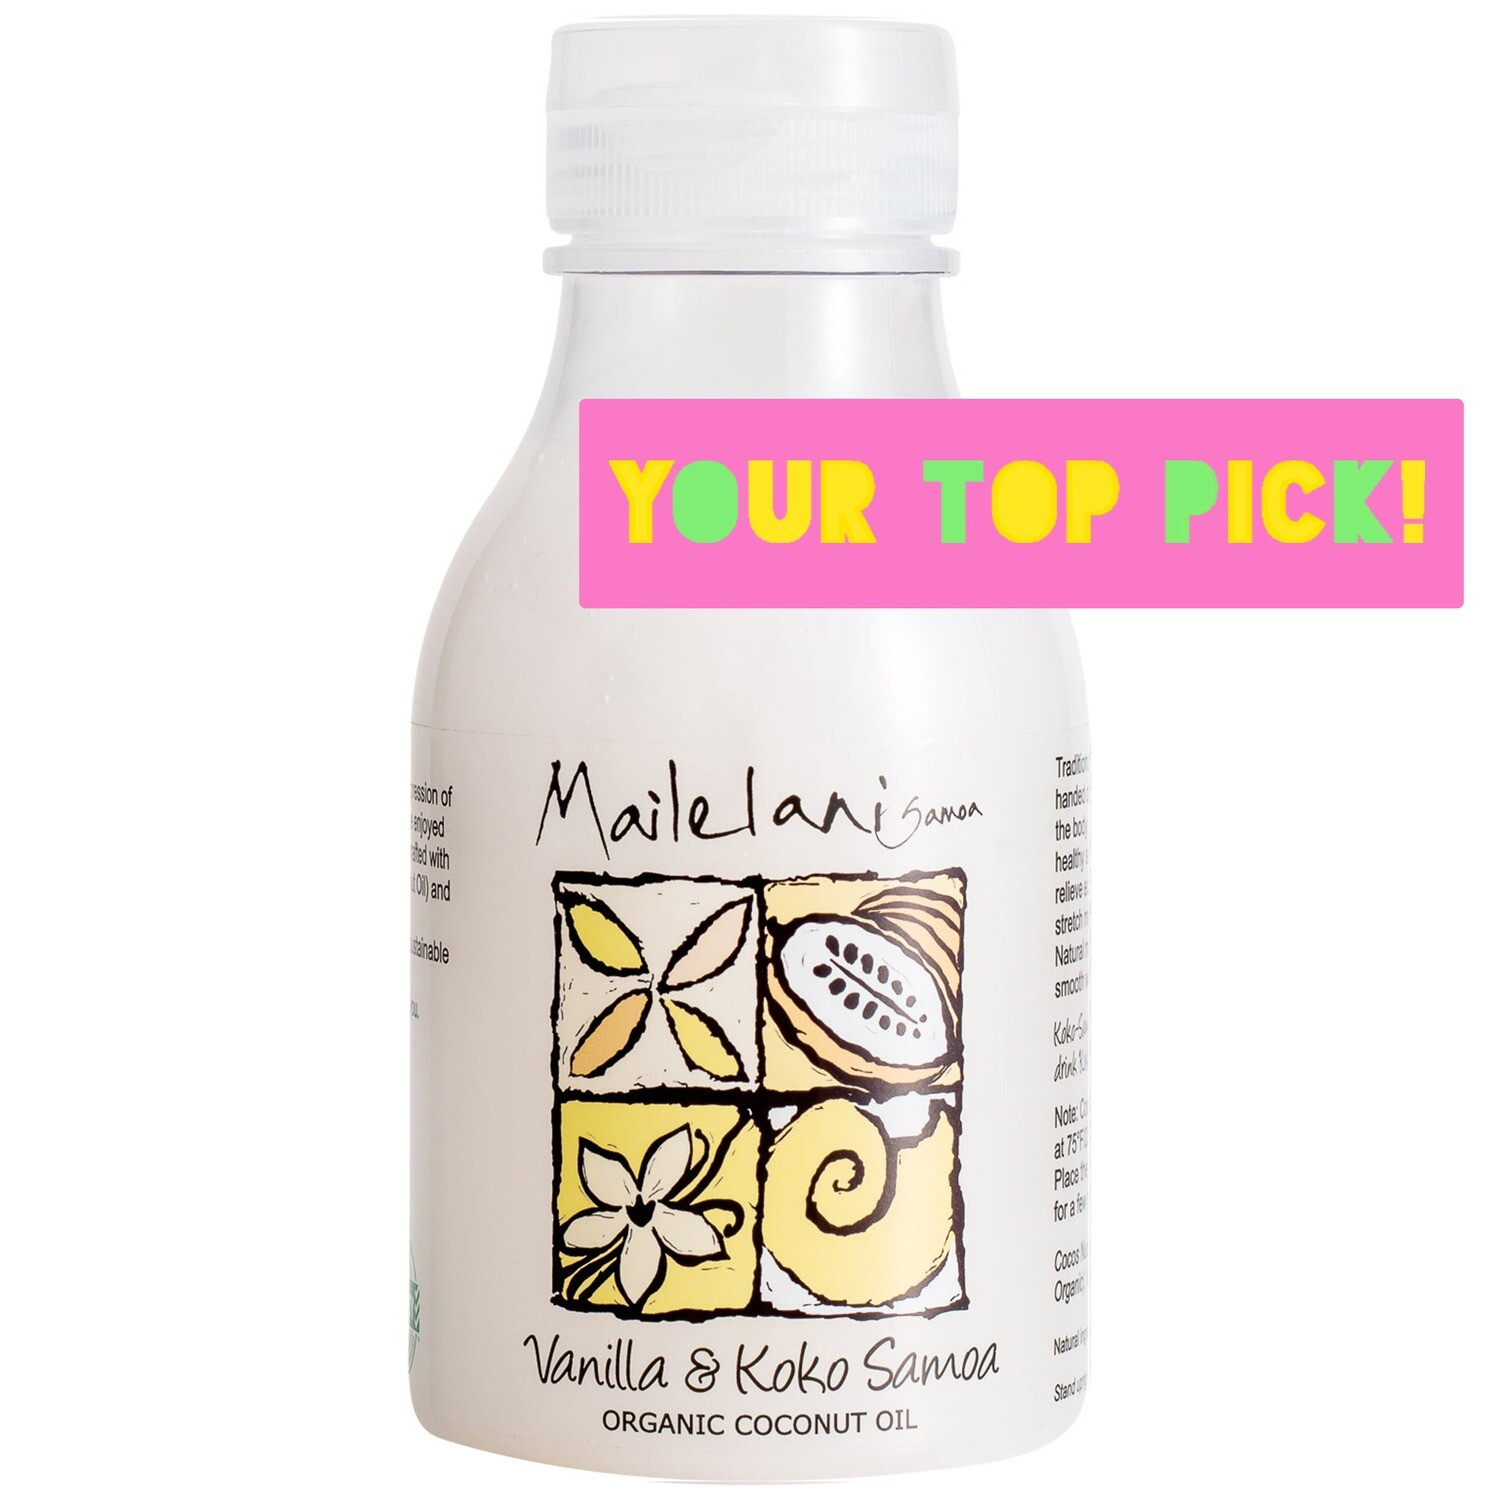 Vanilla & Koko Samoa Organic Coconut Body Oil 300ml / 10.14 fl oz